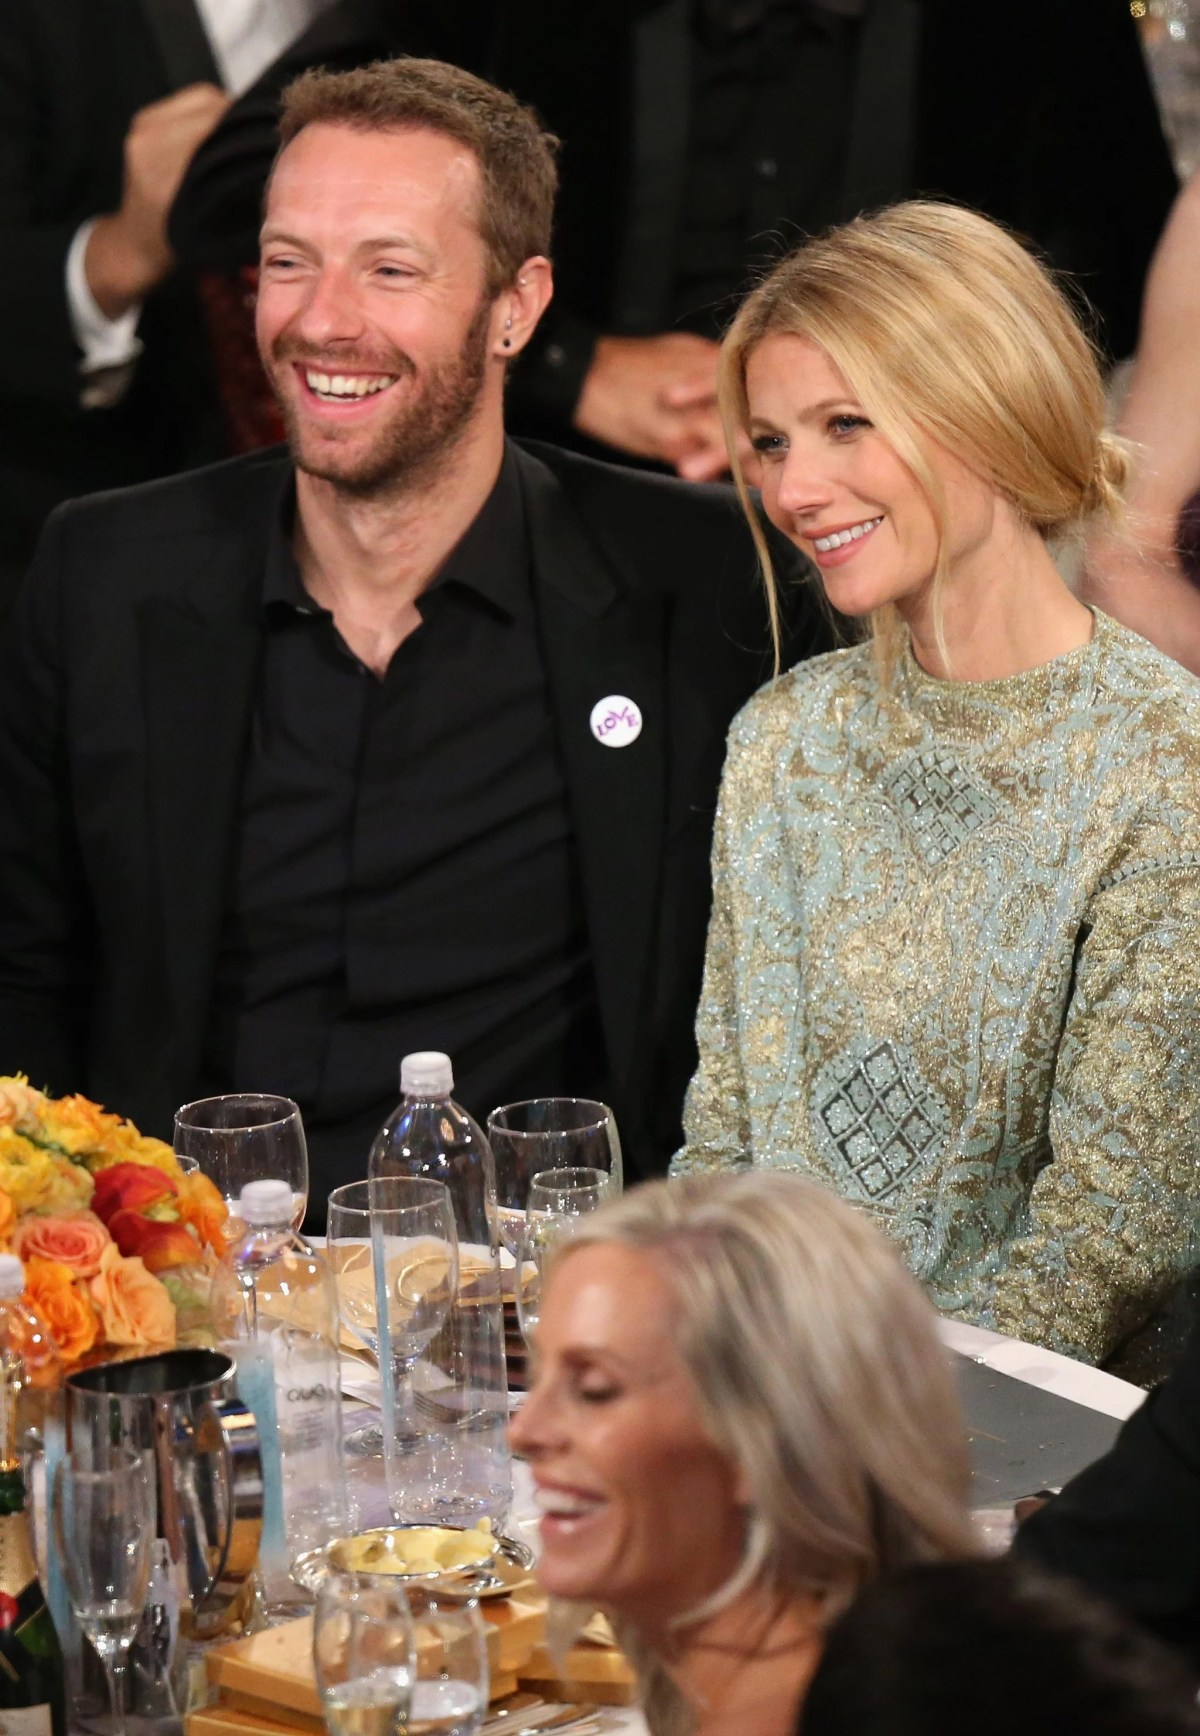 Gwyneth Paltrow and Chris Martin Cute Pictures | POPSUGAR Celebrity